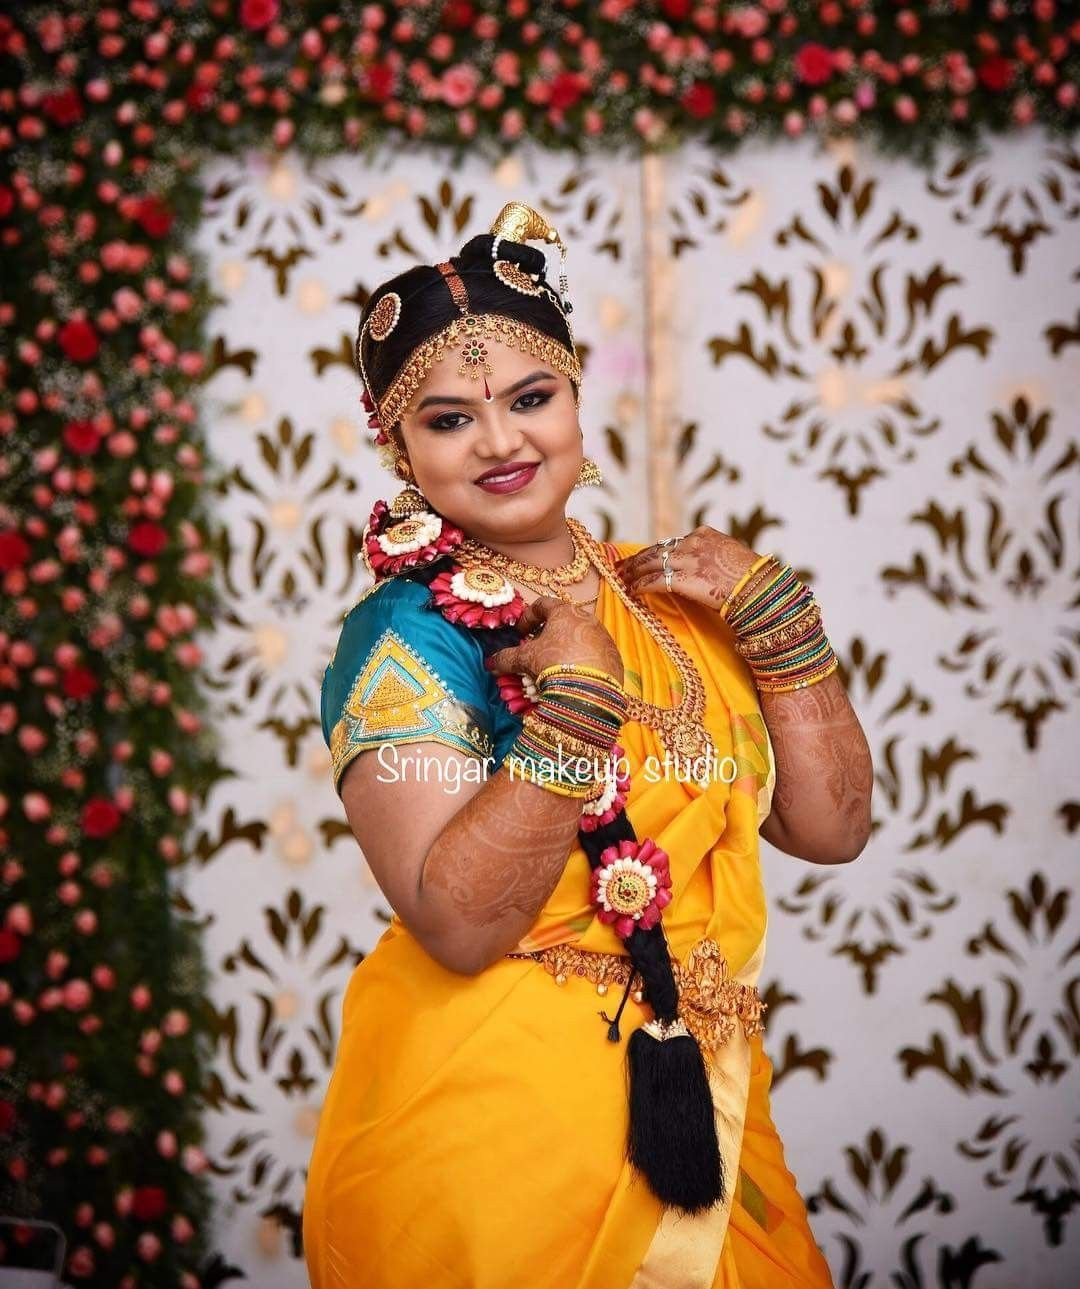 Wedding Kondai Hairstyle: Iyengar Bride South Indian Wedding Indian Bride Andal